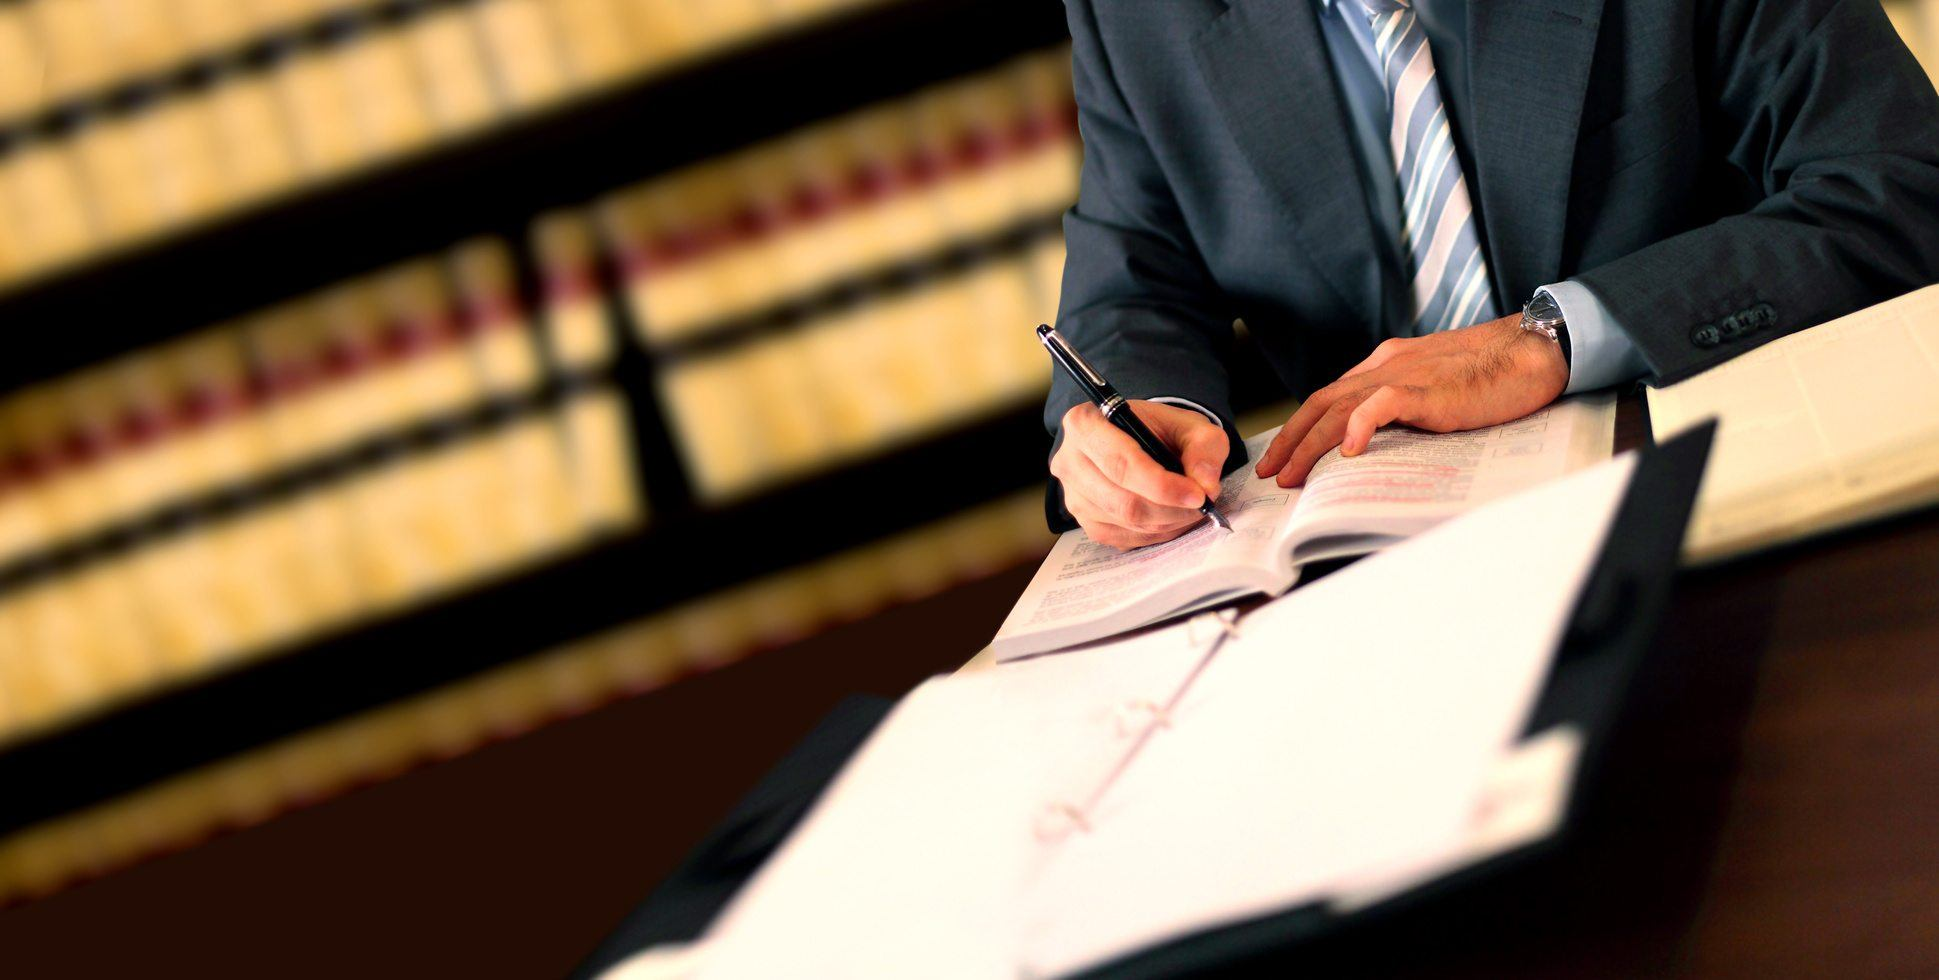 Attorney Profile - Disability Lawyers in Missouri and Arkansas - Krebs Law Firm